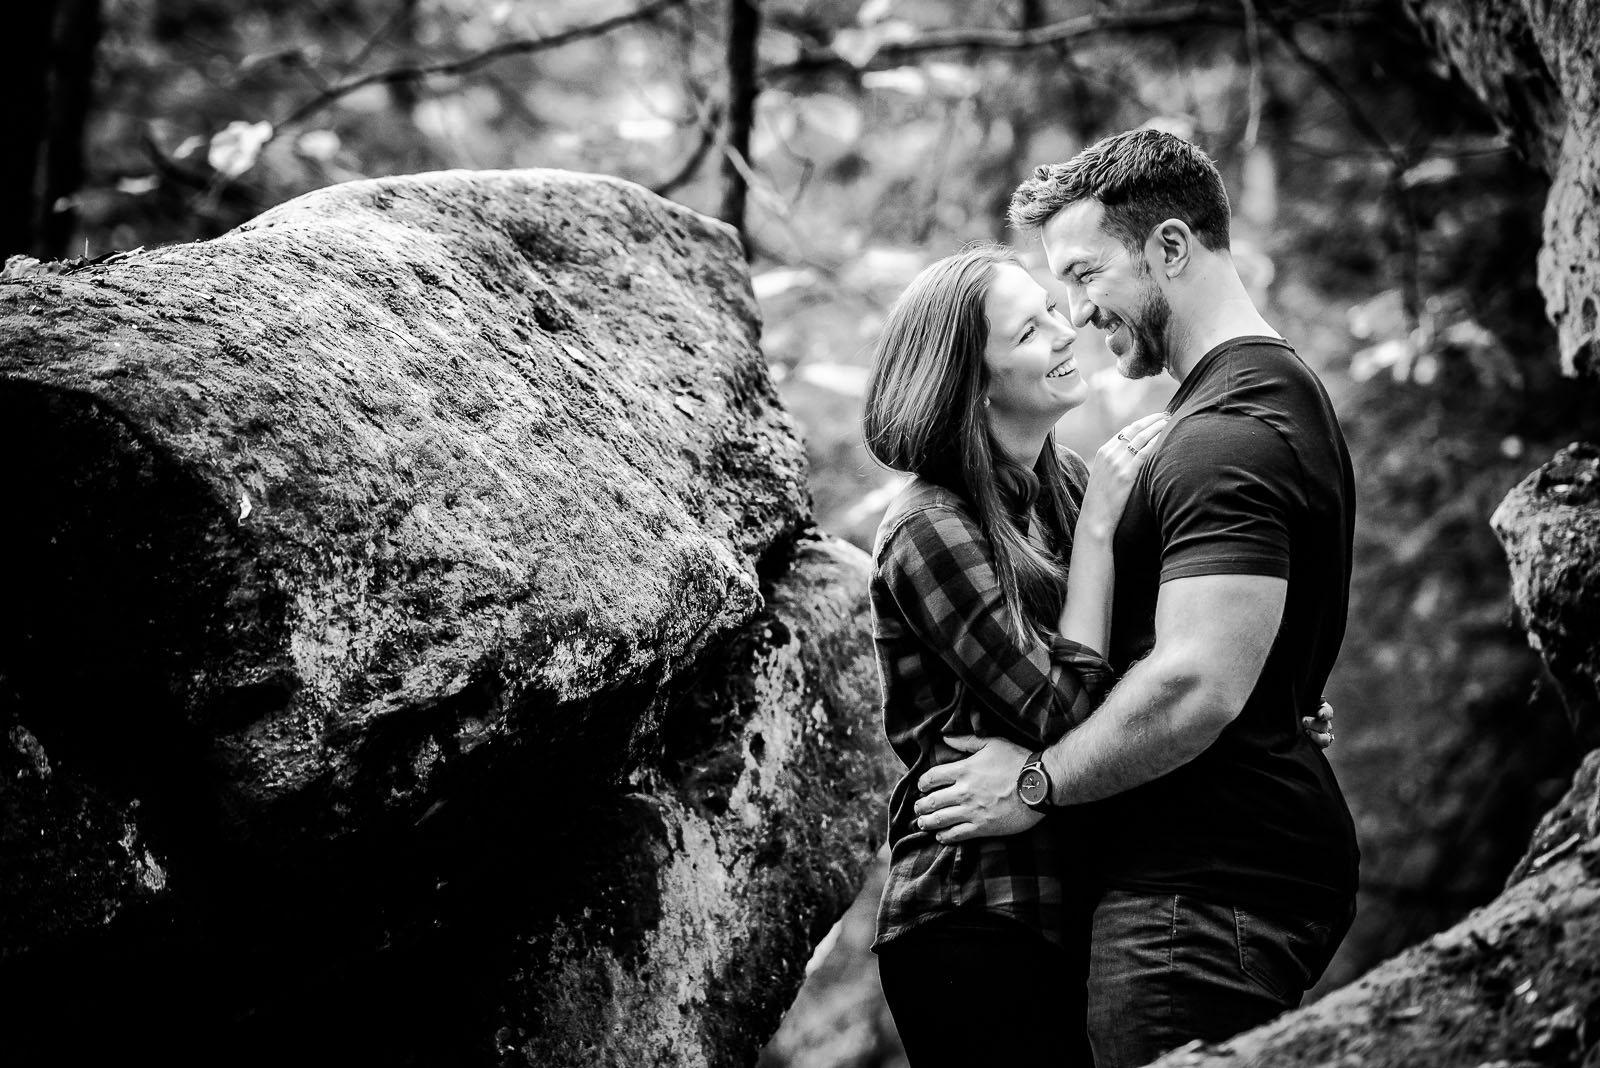 Eric_and_Christy_Photography_Blog_Stephanie_Nick_Engagement-16